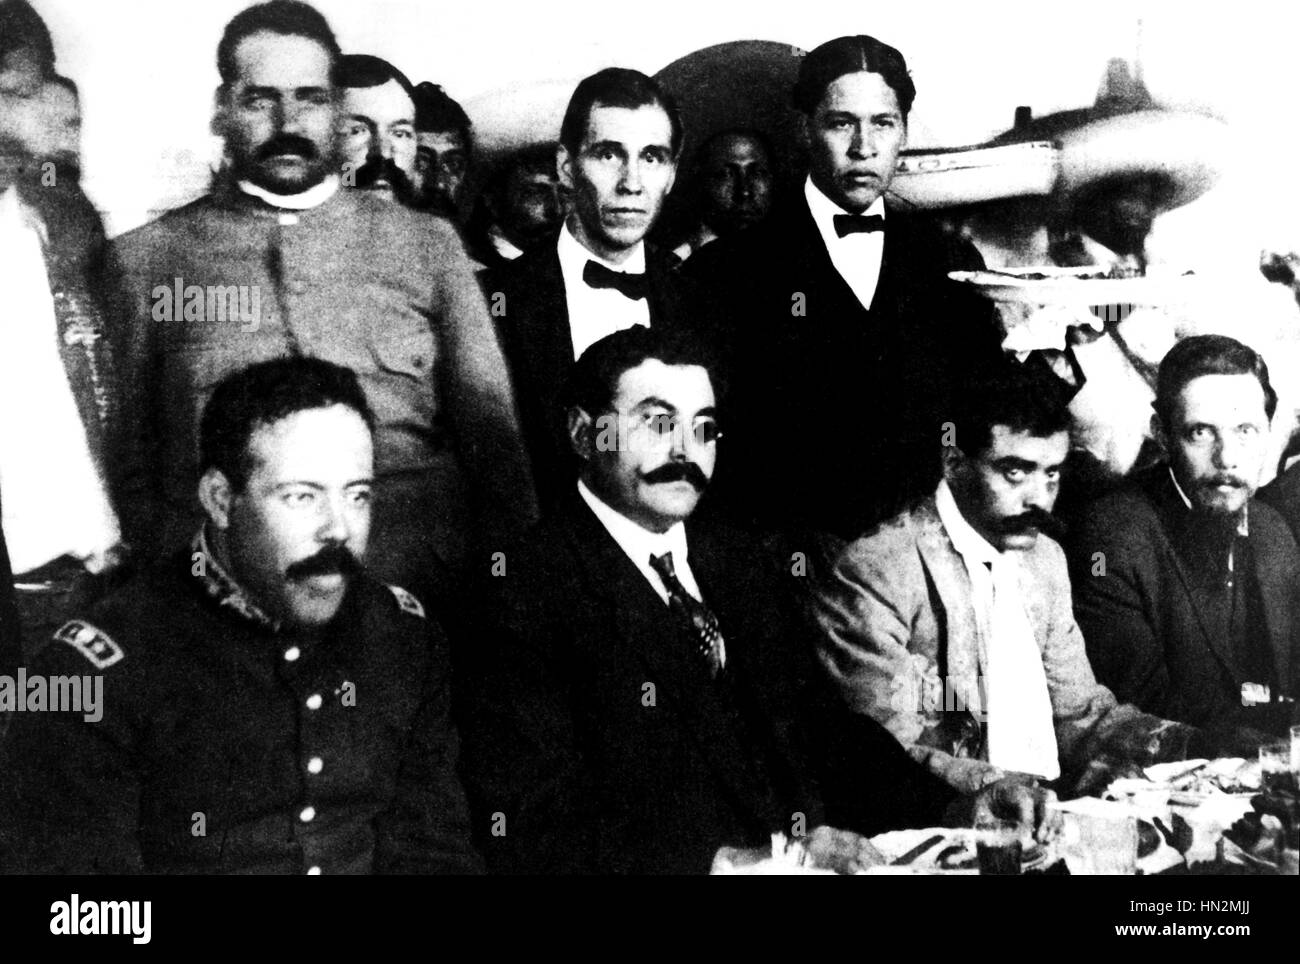 Villa, Eulalio Gutierrez and Emiliano Zapata together for a banquet between the Huerta and Carranza presidencies - Stock Image